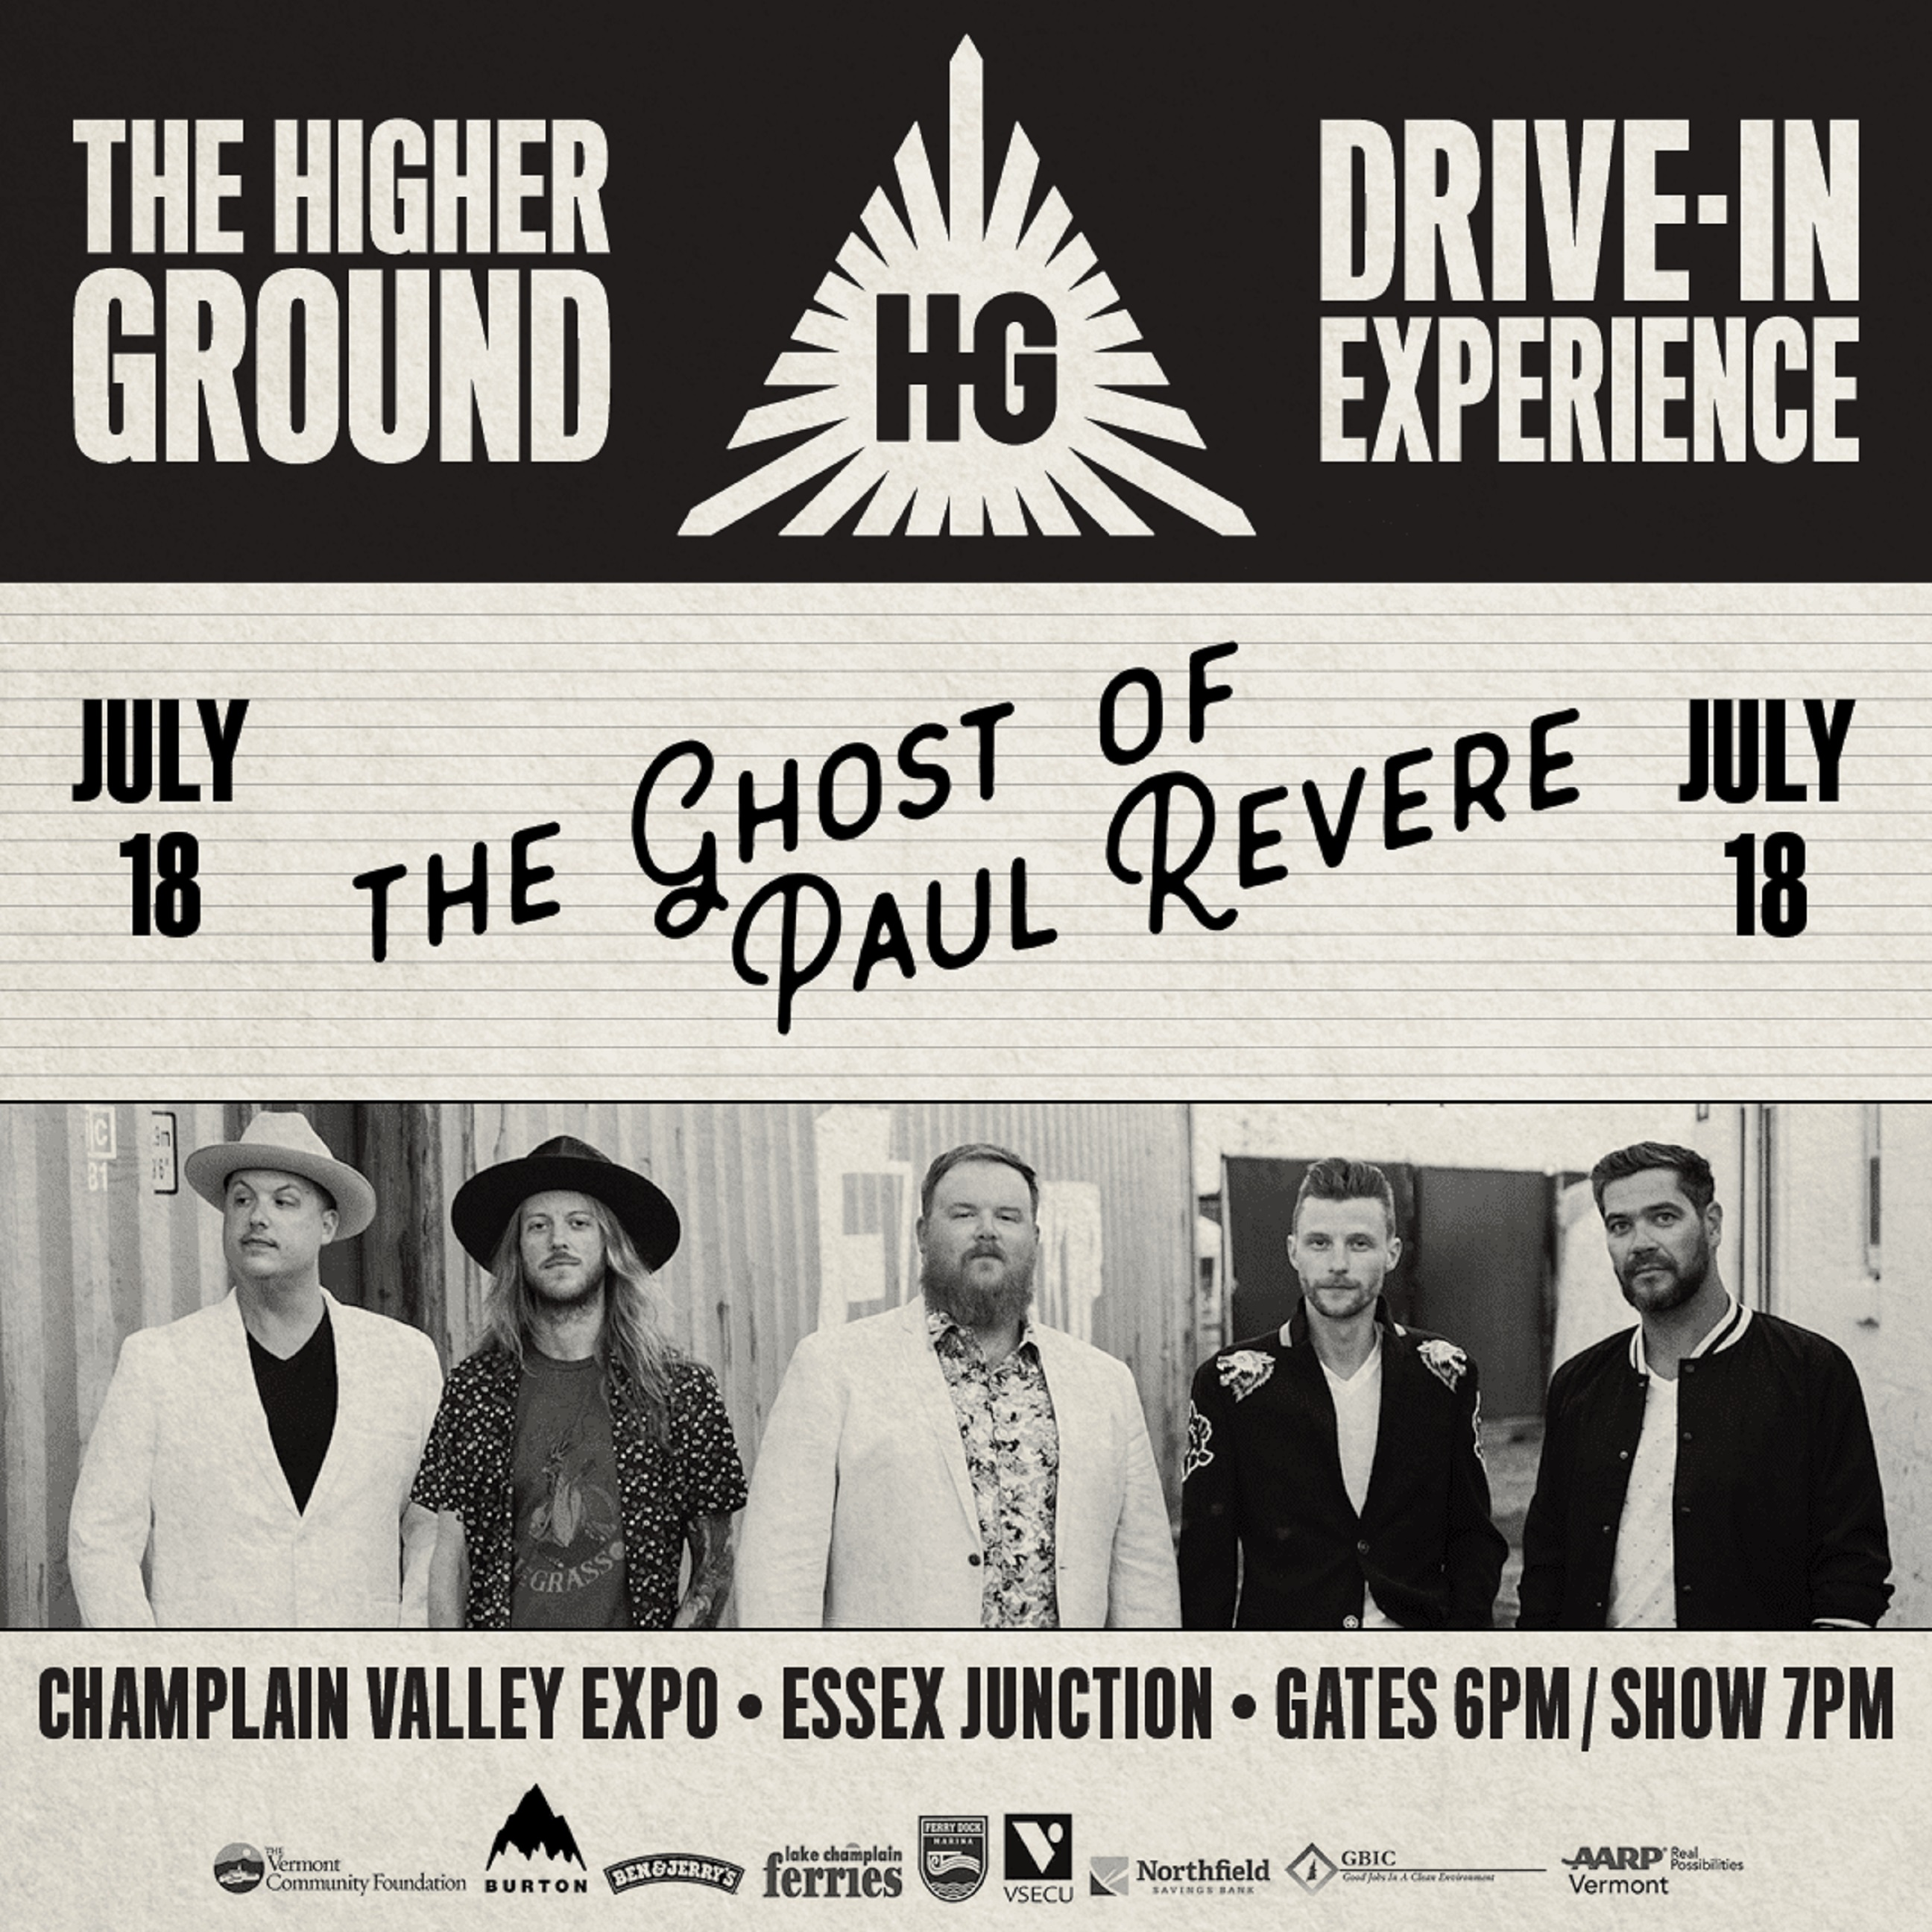 The Ghost of Paul Revere 7/18 at the HG Drive-In Experience